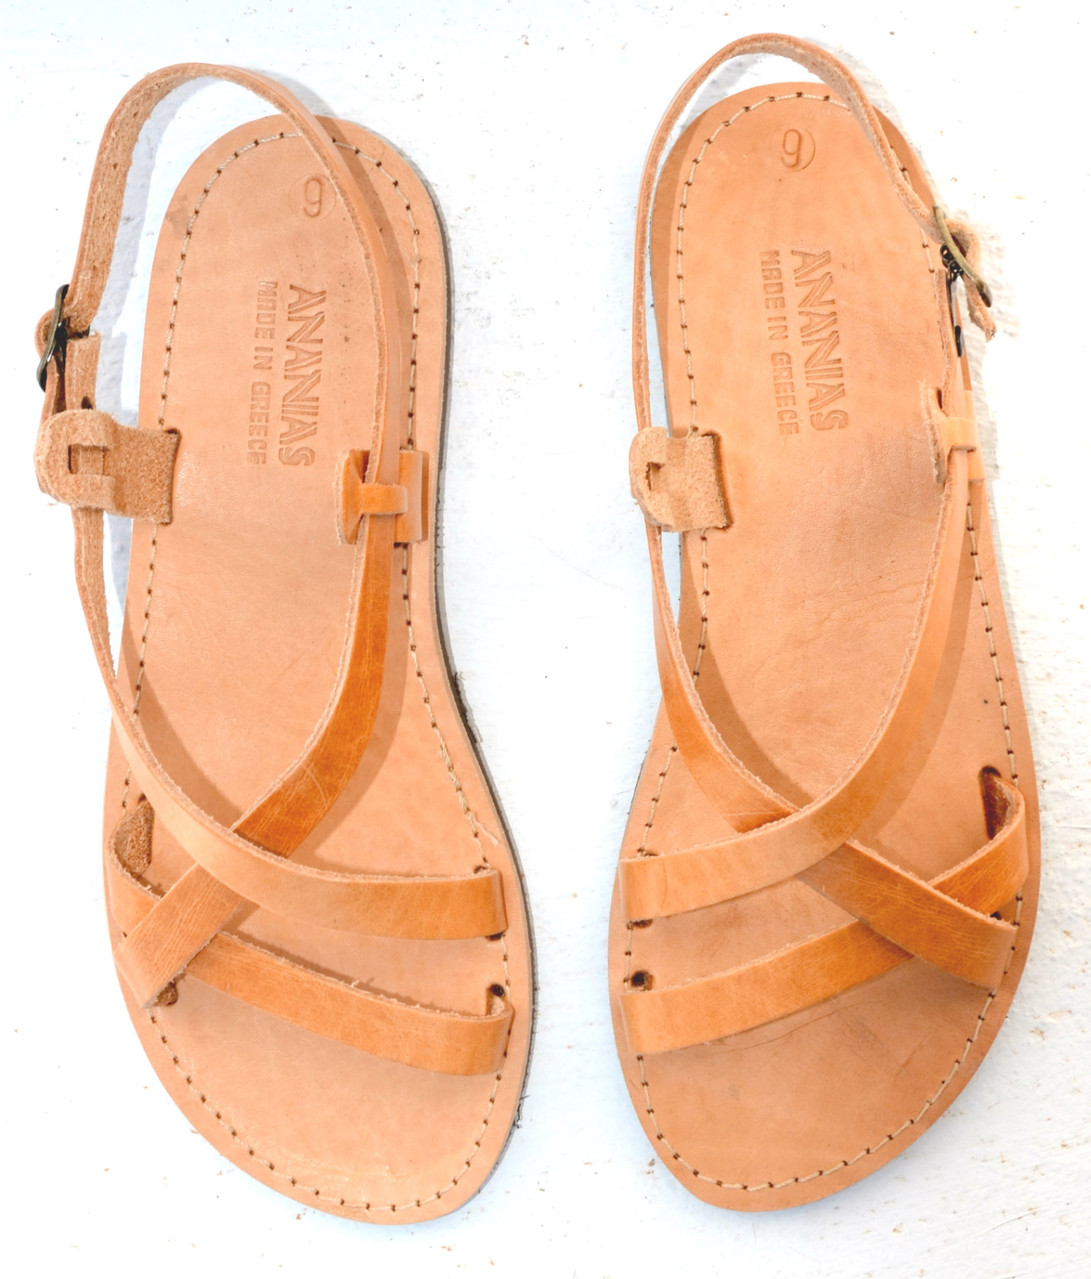 0f4f5509af04 Leather sandals from Greece - Ananias Sandals